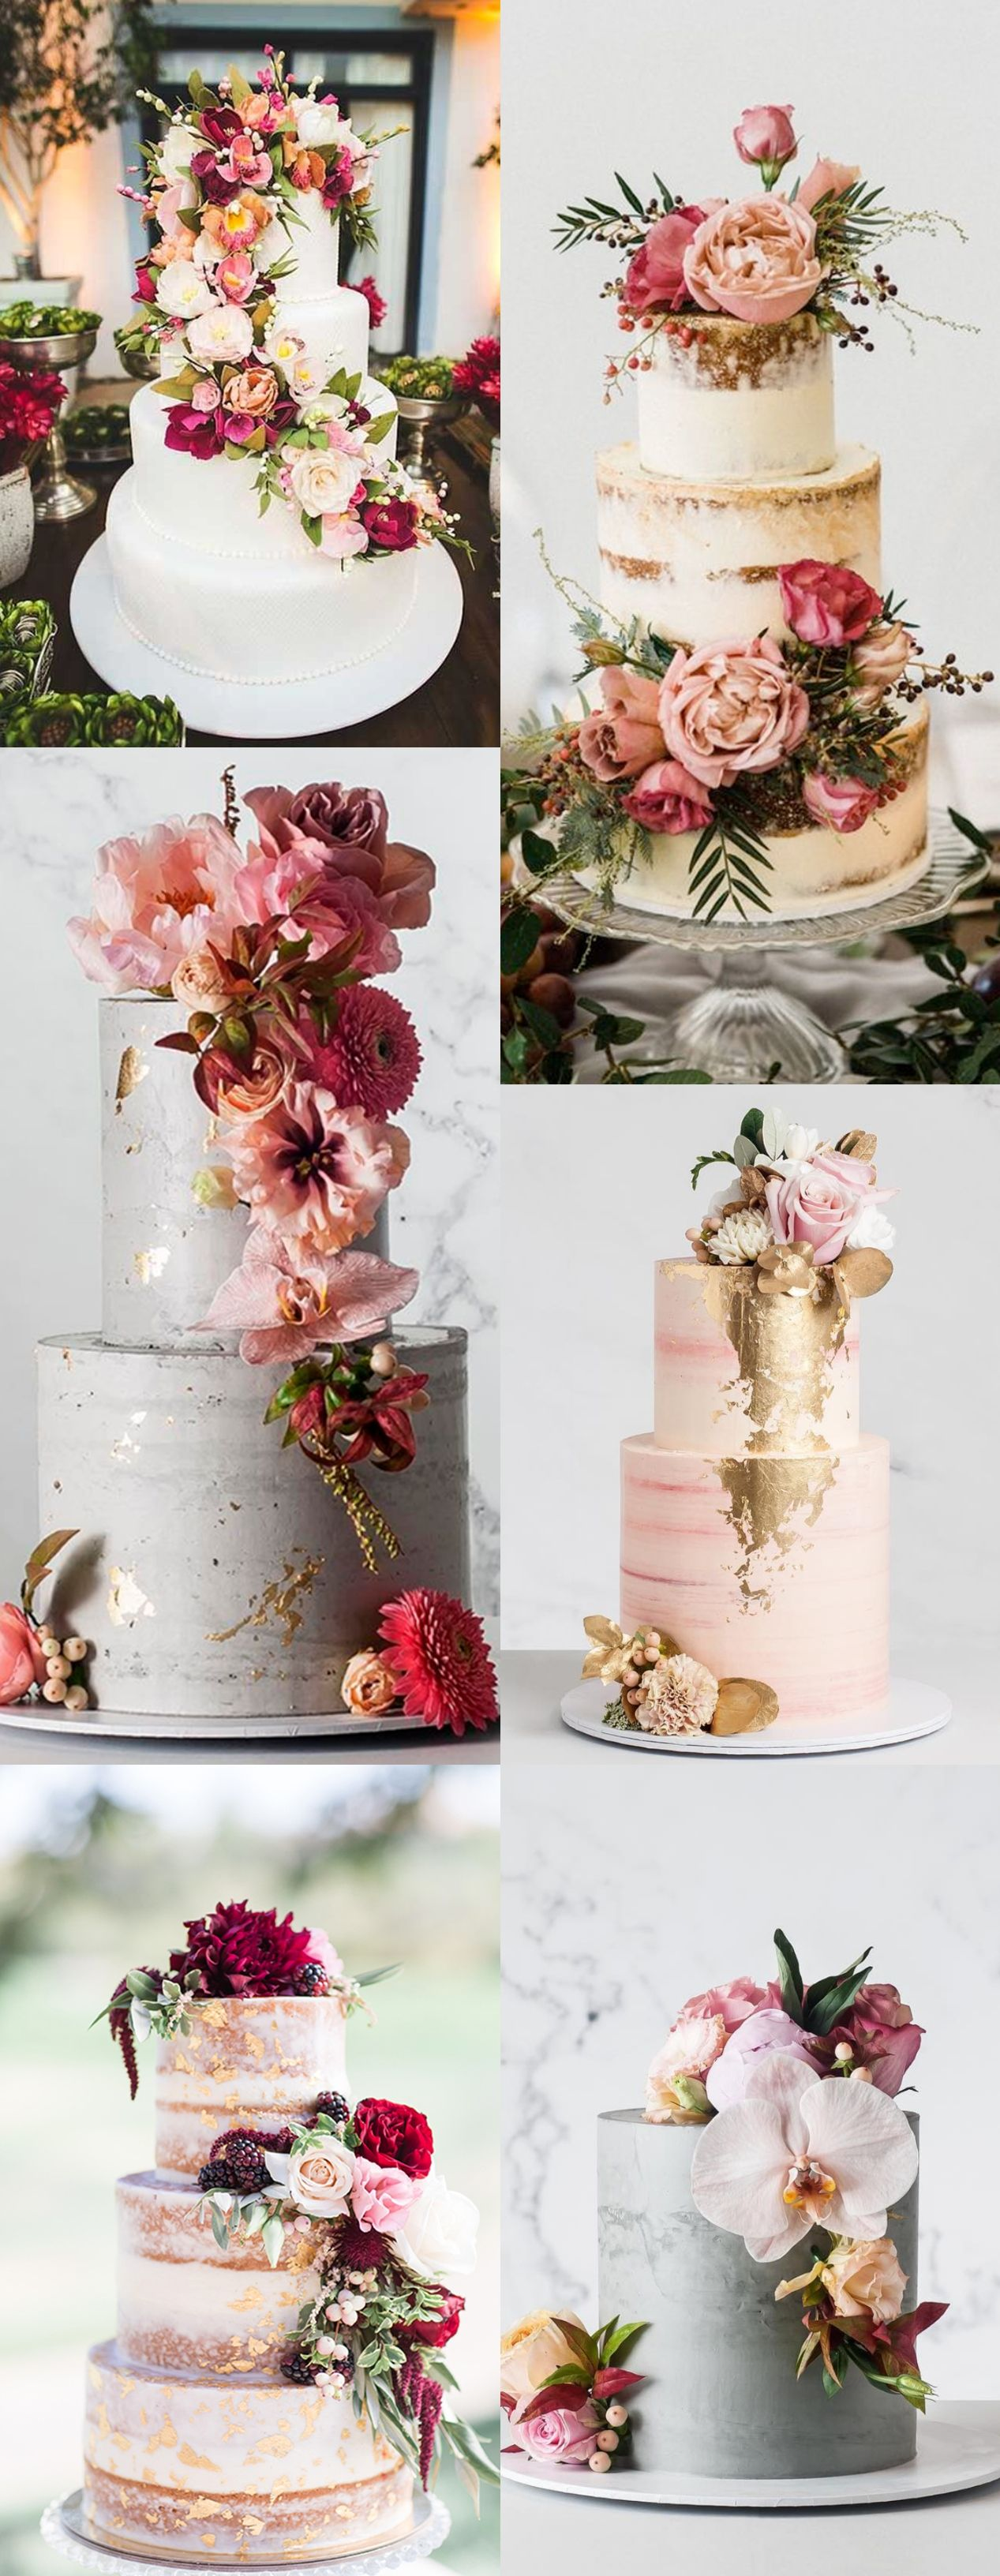 Top 10 Wedding Cake Trends for 2020 Tall wedding cakes